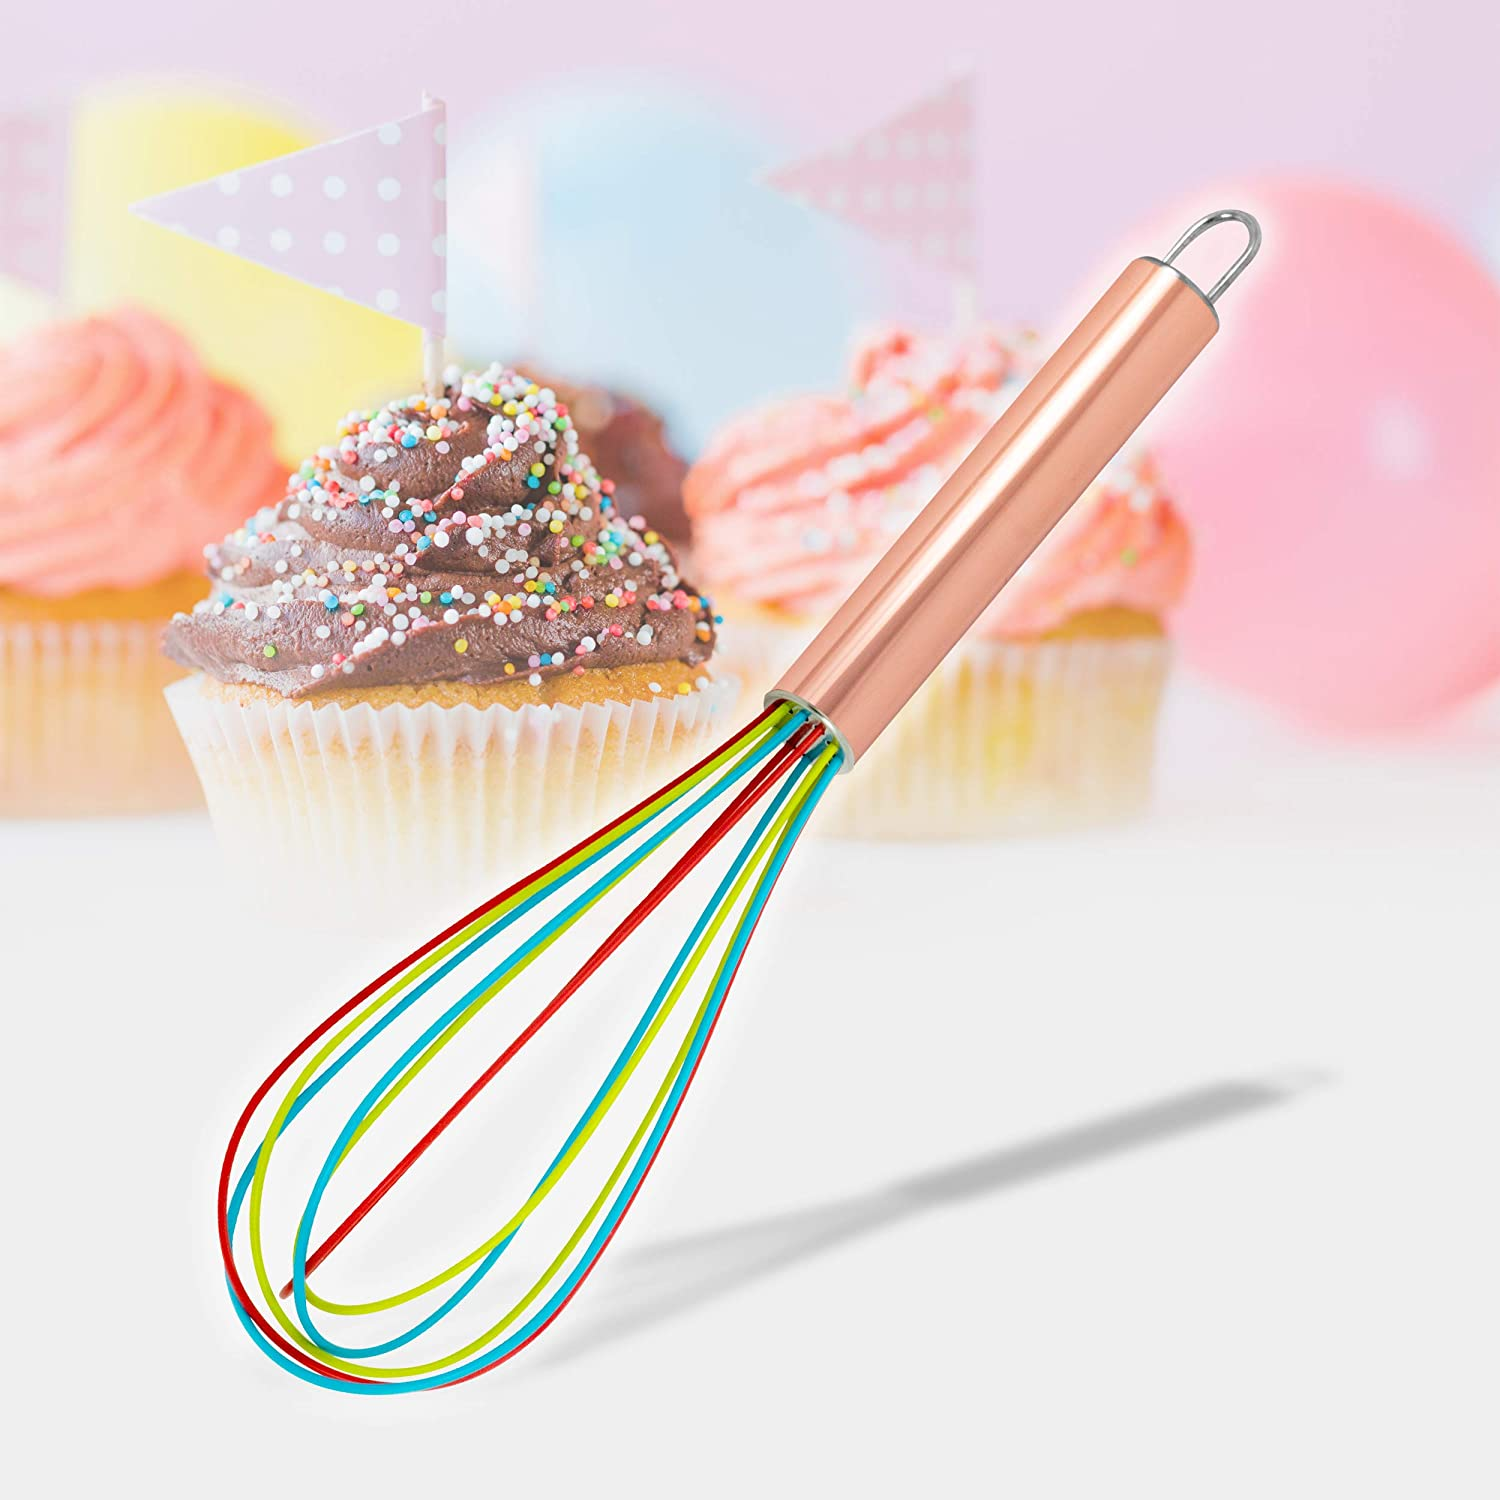 """ExcelSteel 230 Perfect Durable Gift for Mixing Easy to Clean Up Silicone Tri-Color Whisk, 8"""", Rose Gold"""